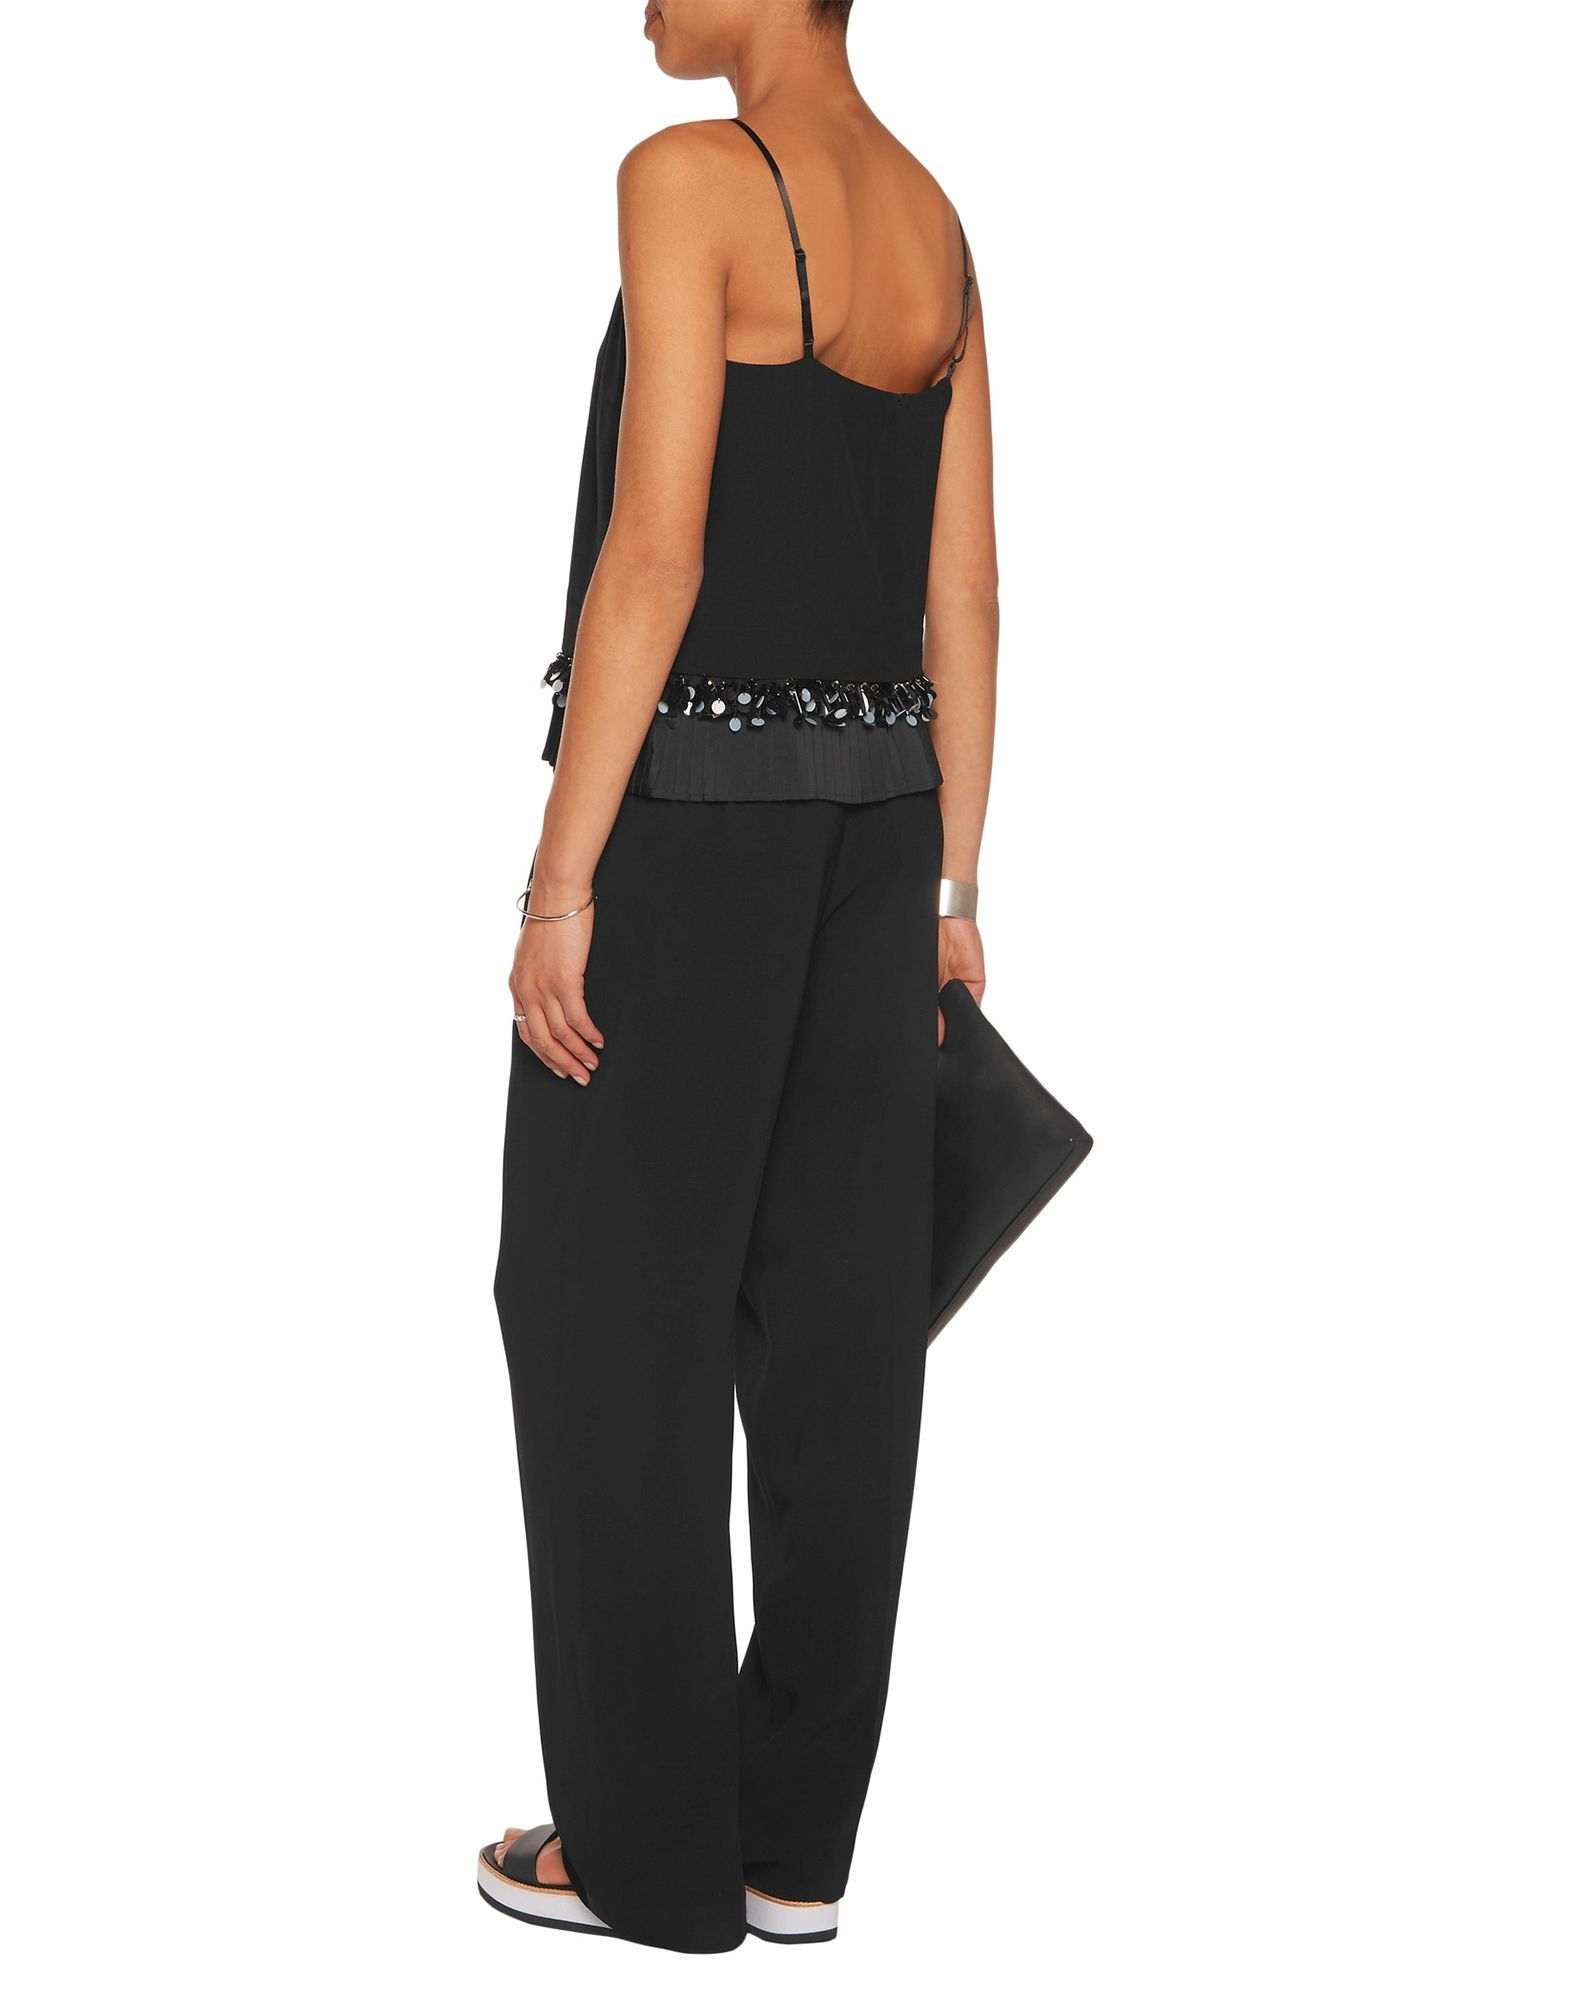 Mother Of Pearl Black Camisole